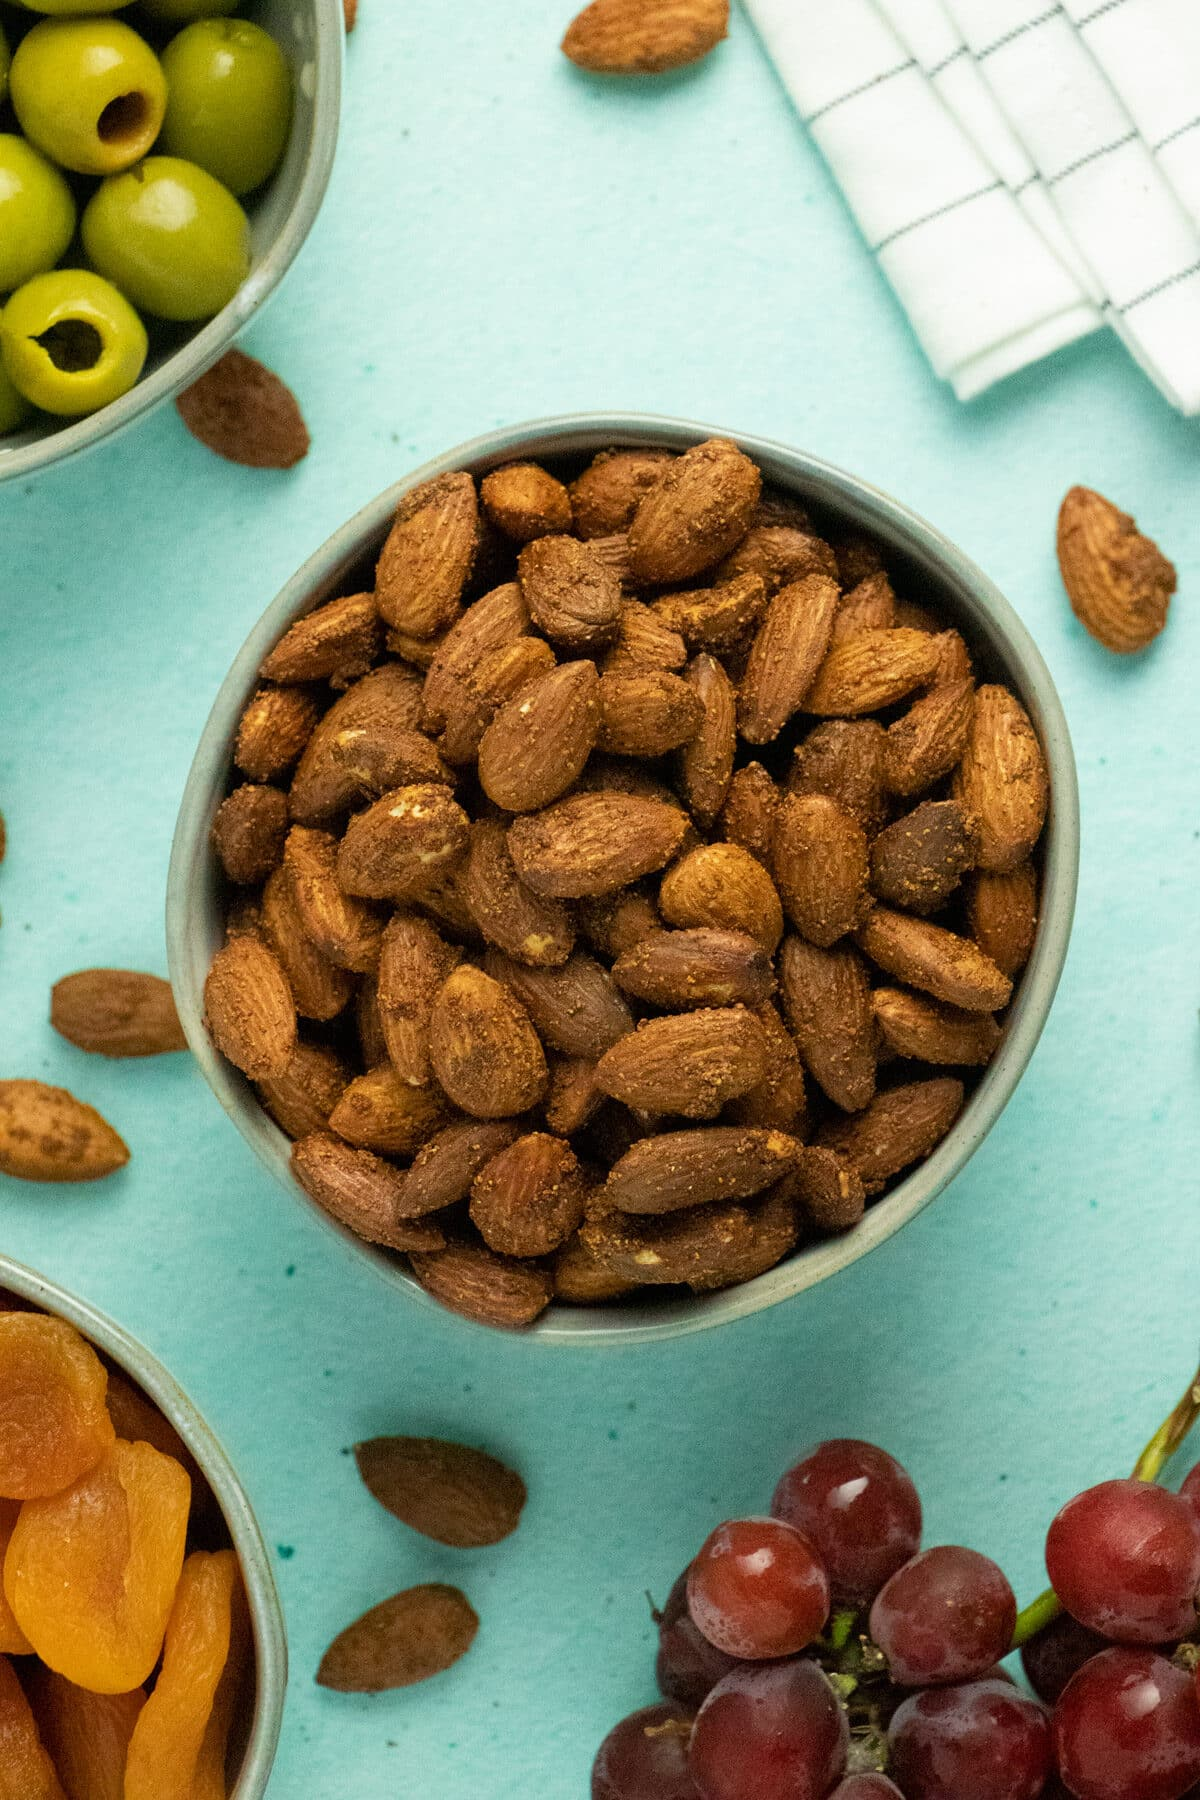 bowl of air fryer roasted almonds as part of a party spread with olives and dried apricots